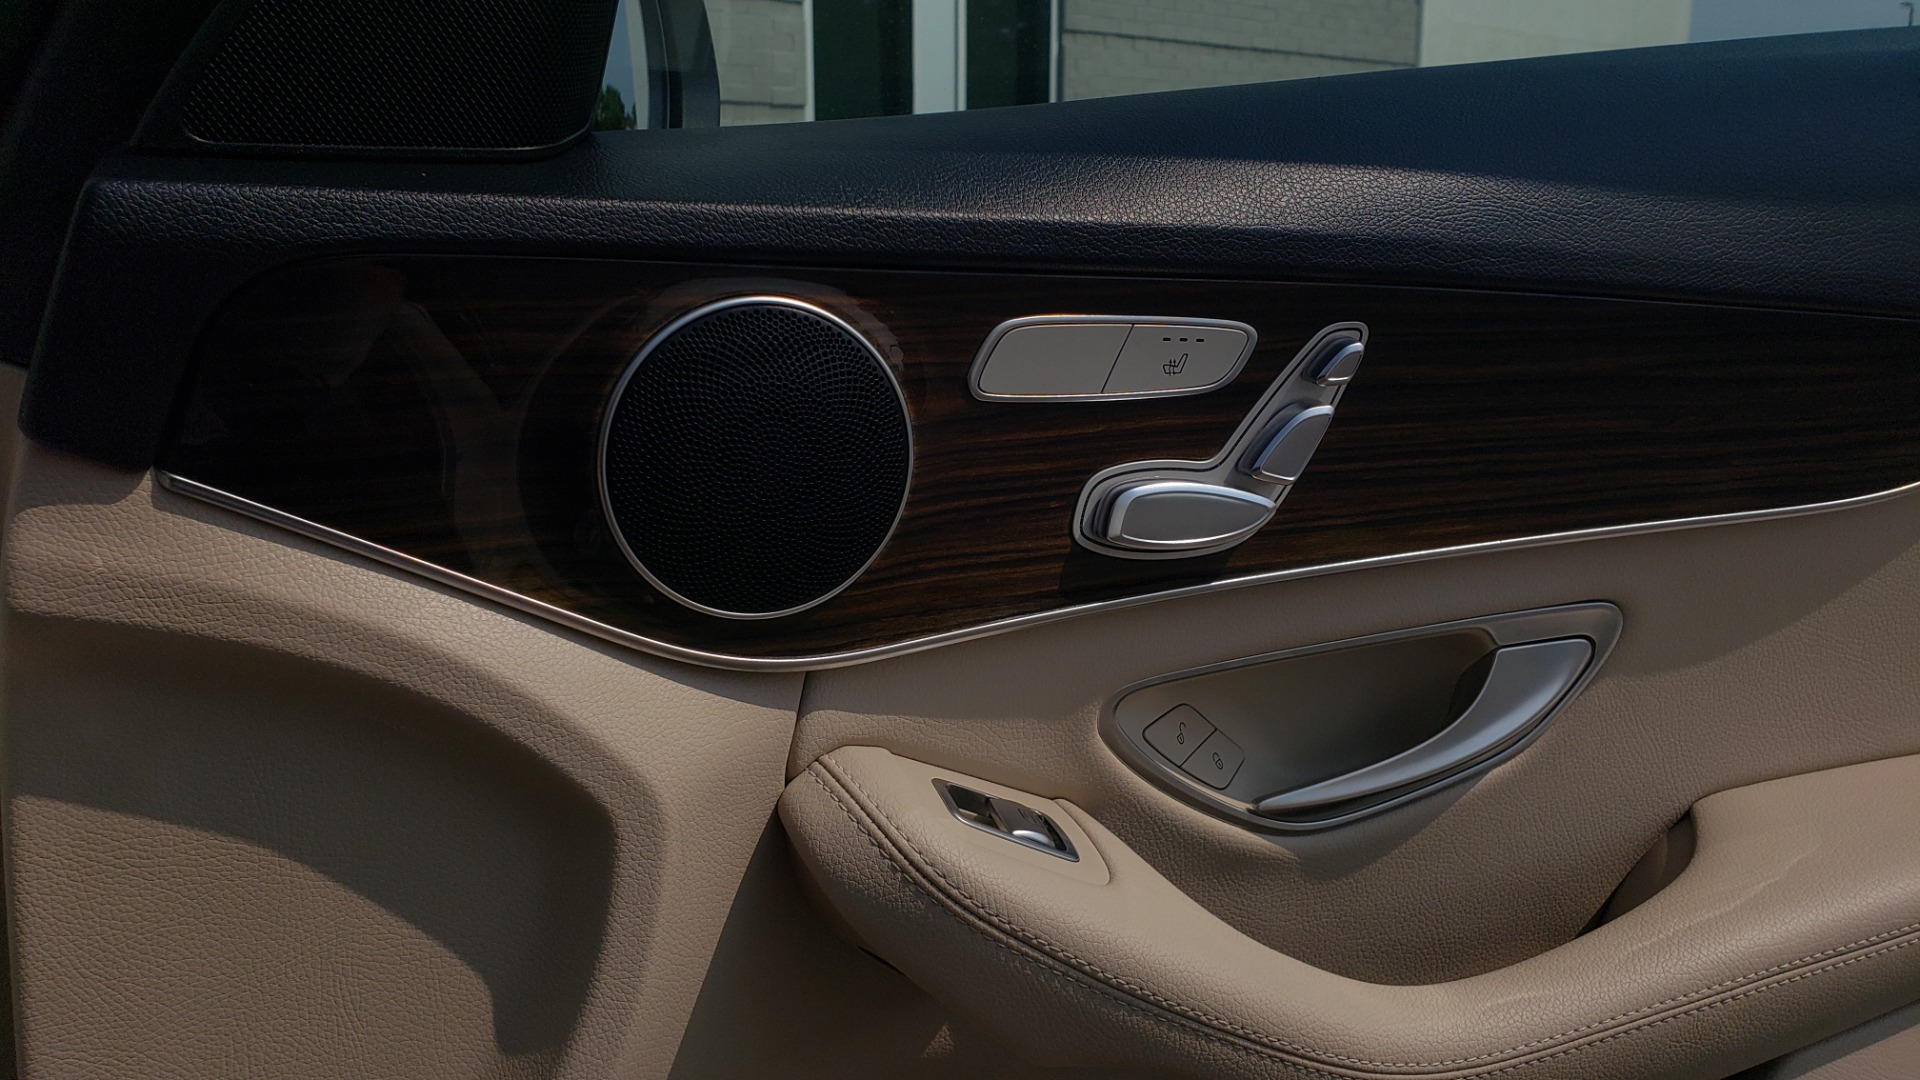 Used 2018 Mercedes-Benz C-CLASS C 300 PREMIUM / KEYLESS-GO / APPLE / PANO-ROOF / REARVIEW for sale $28,295 at Formula Imports in Charlotte NC 28227 60